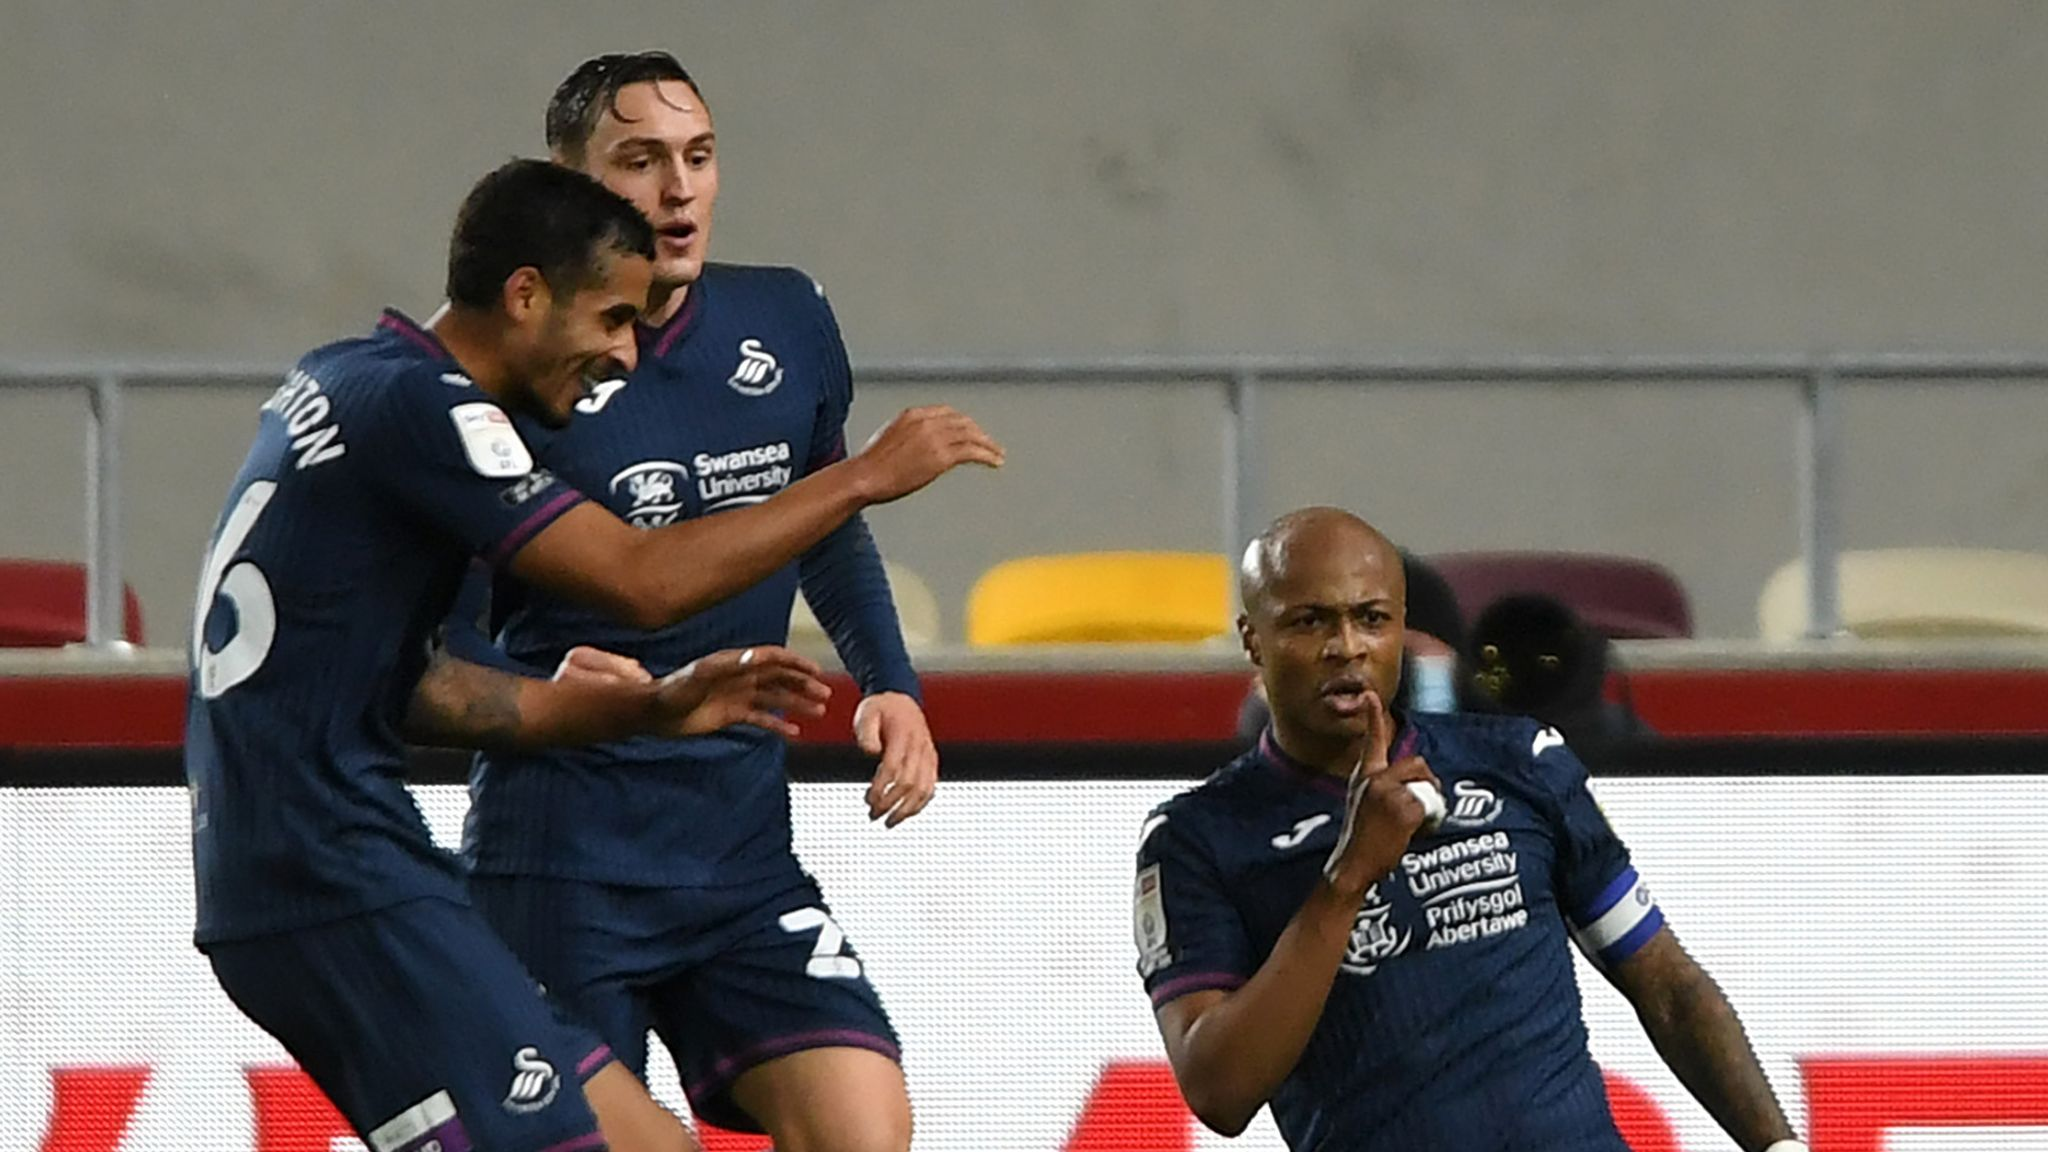 Brentford 1-1 Swansea: Andre Ayew strikes to deny Bees ...